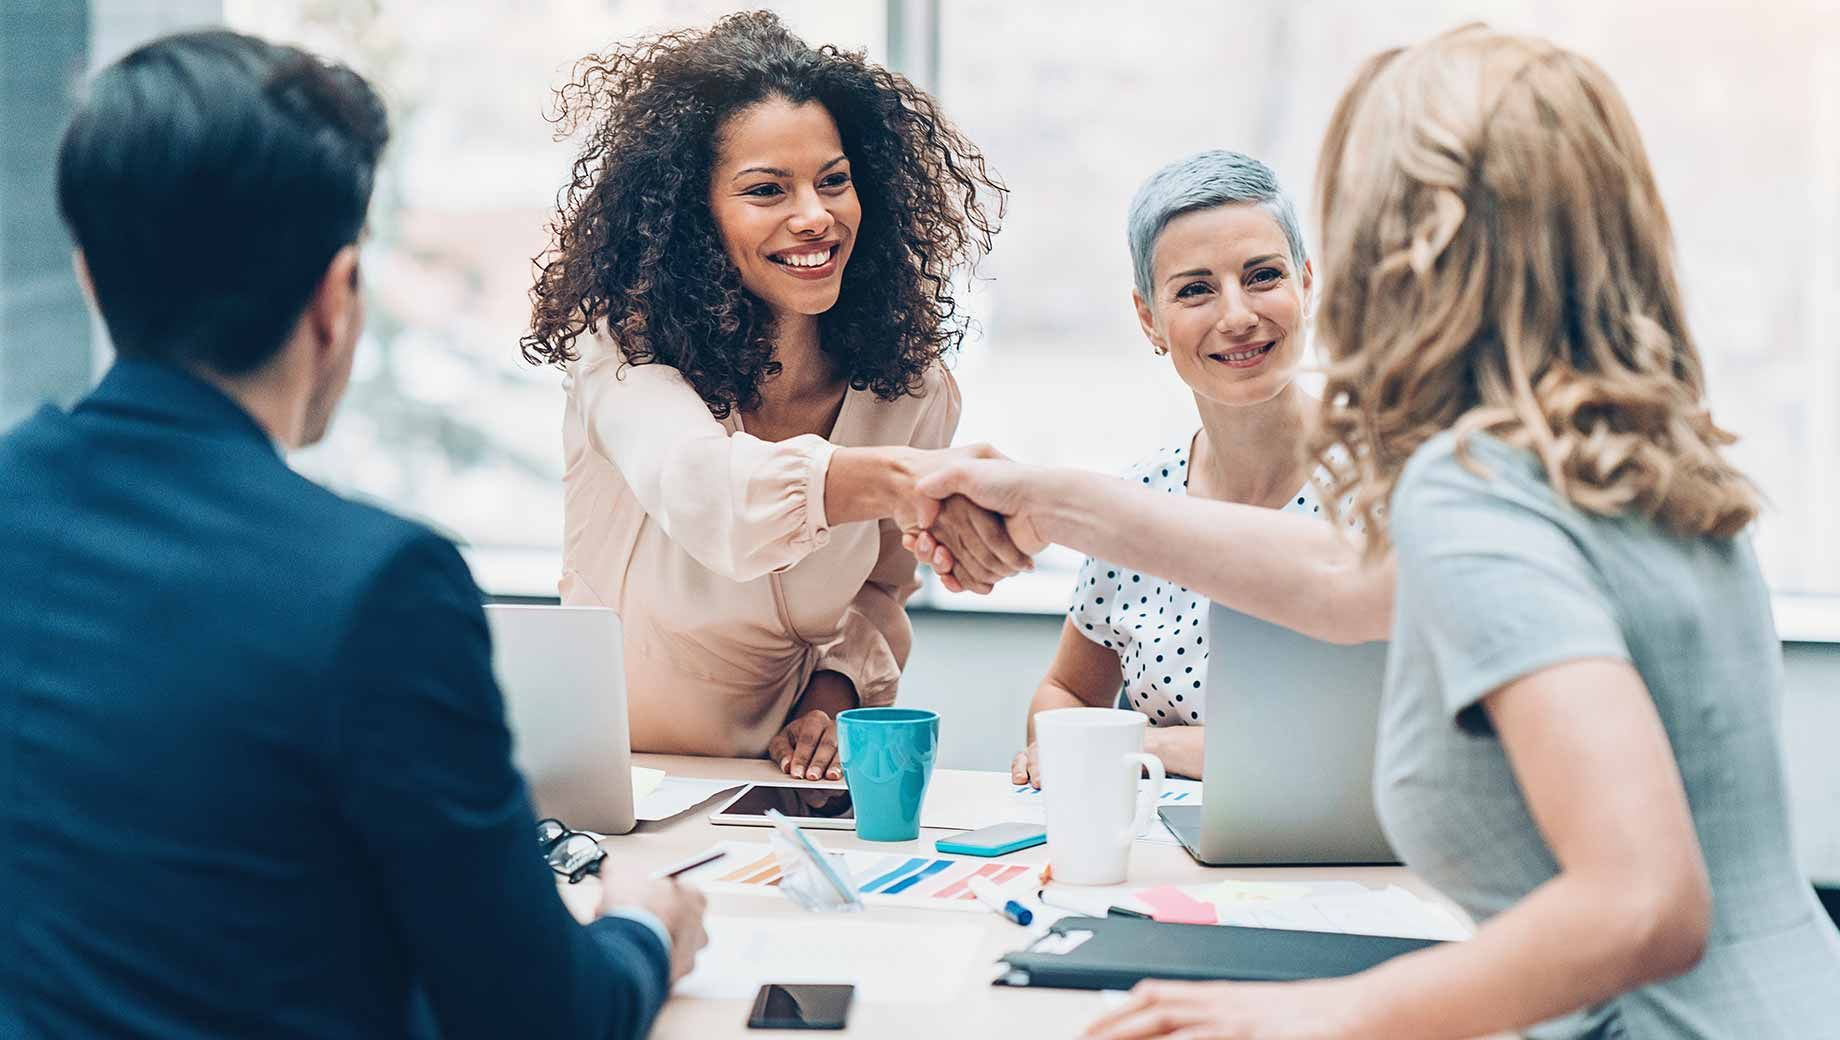 3 Daily Actions That Set the Tone for Workplace Culture